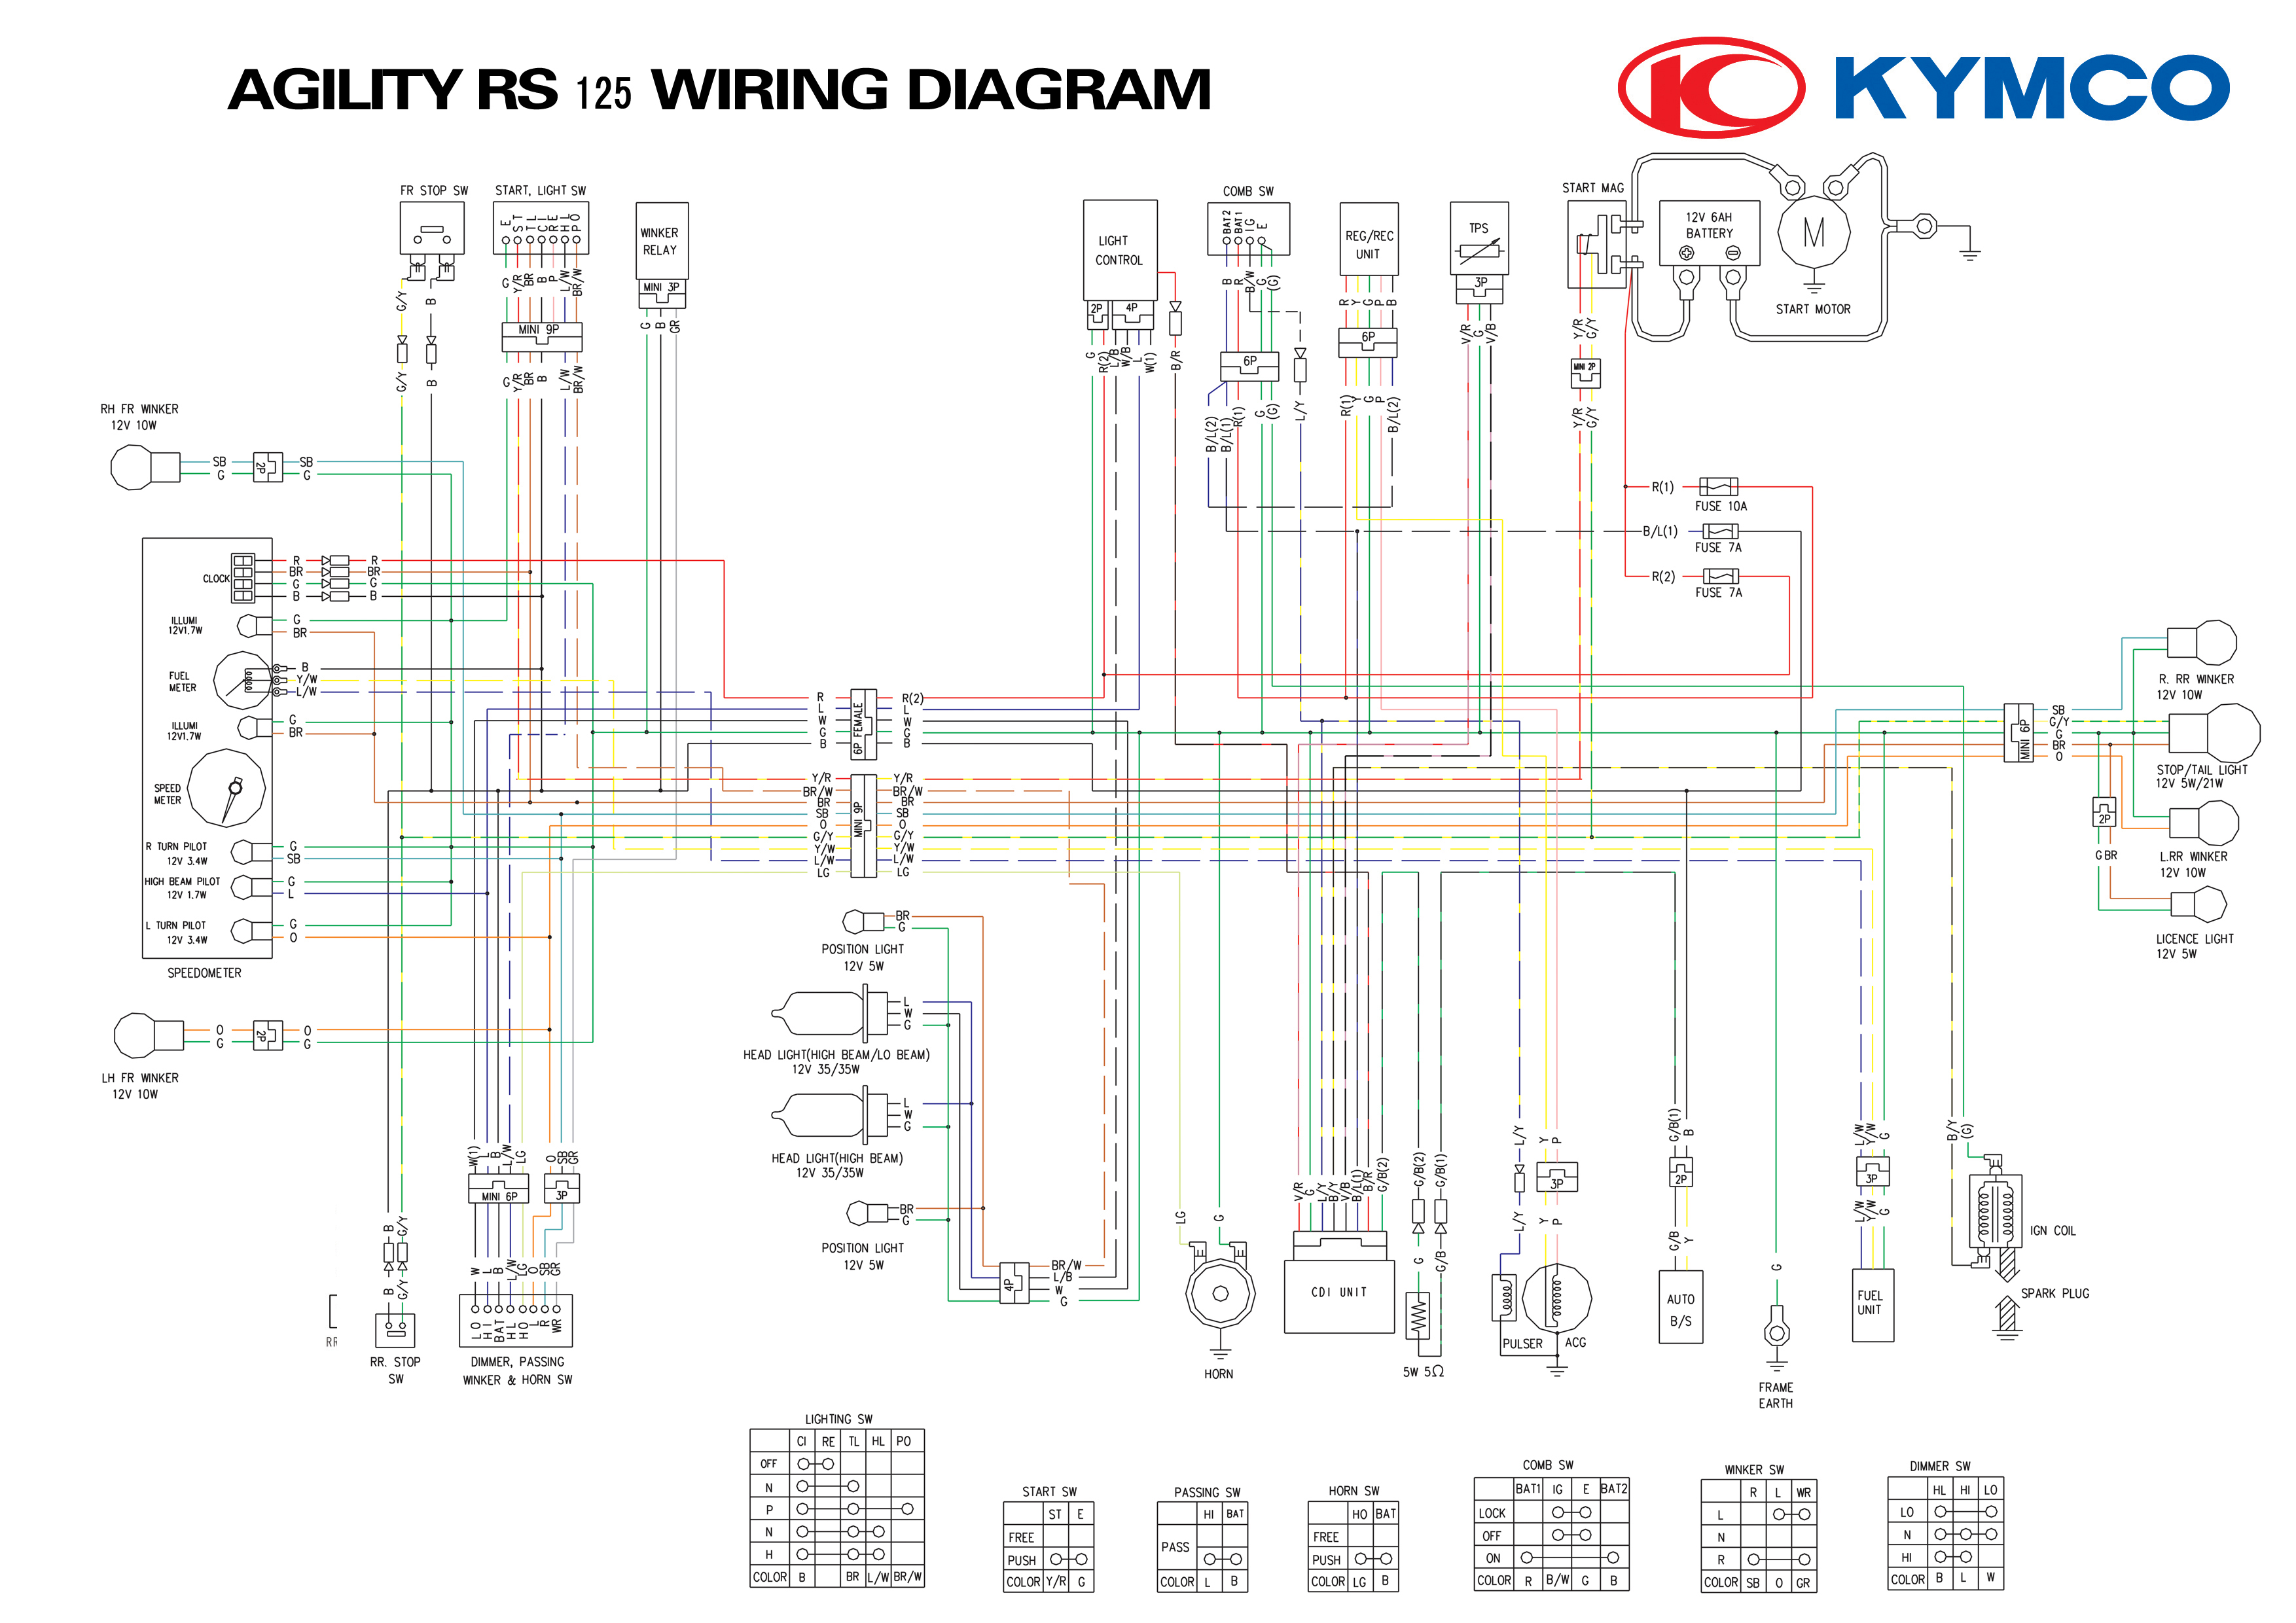 Diagram besides Super X additionally Rezmsz Bco  P Wbv Youa Uqpefgsnbs Kjbs Npyilv R Vsw Wi Hwoxerante Busxknyq Y Hrkyyz Zvp Jpplhuctrfxezbleo W H P in addition D Kymco Super Service Manual B D A A D D Ba D Ff likewise . on kymco super 8 wiring diagram